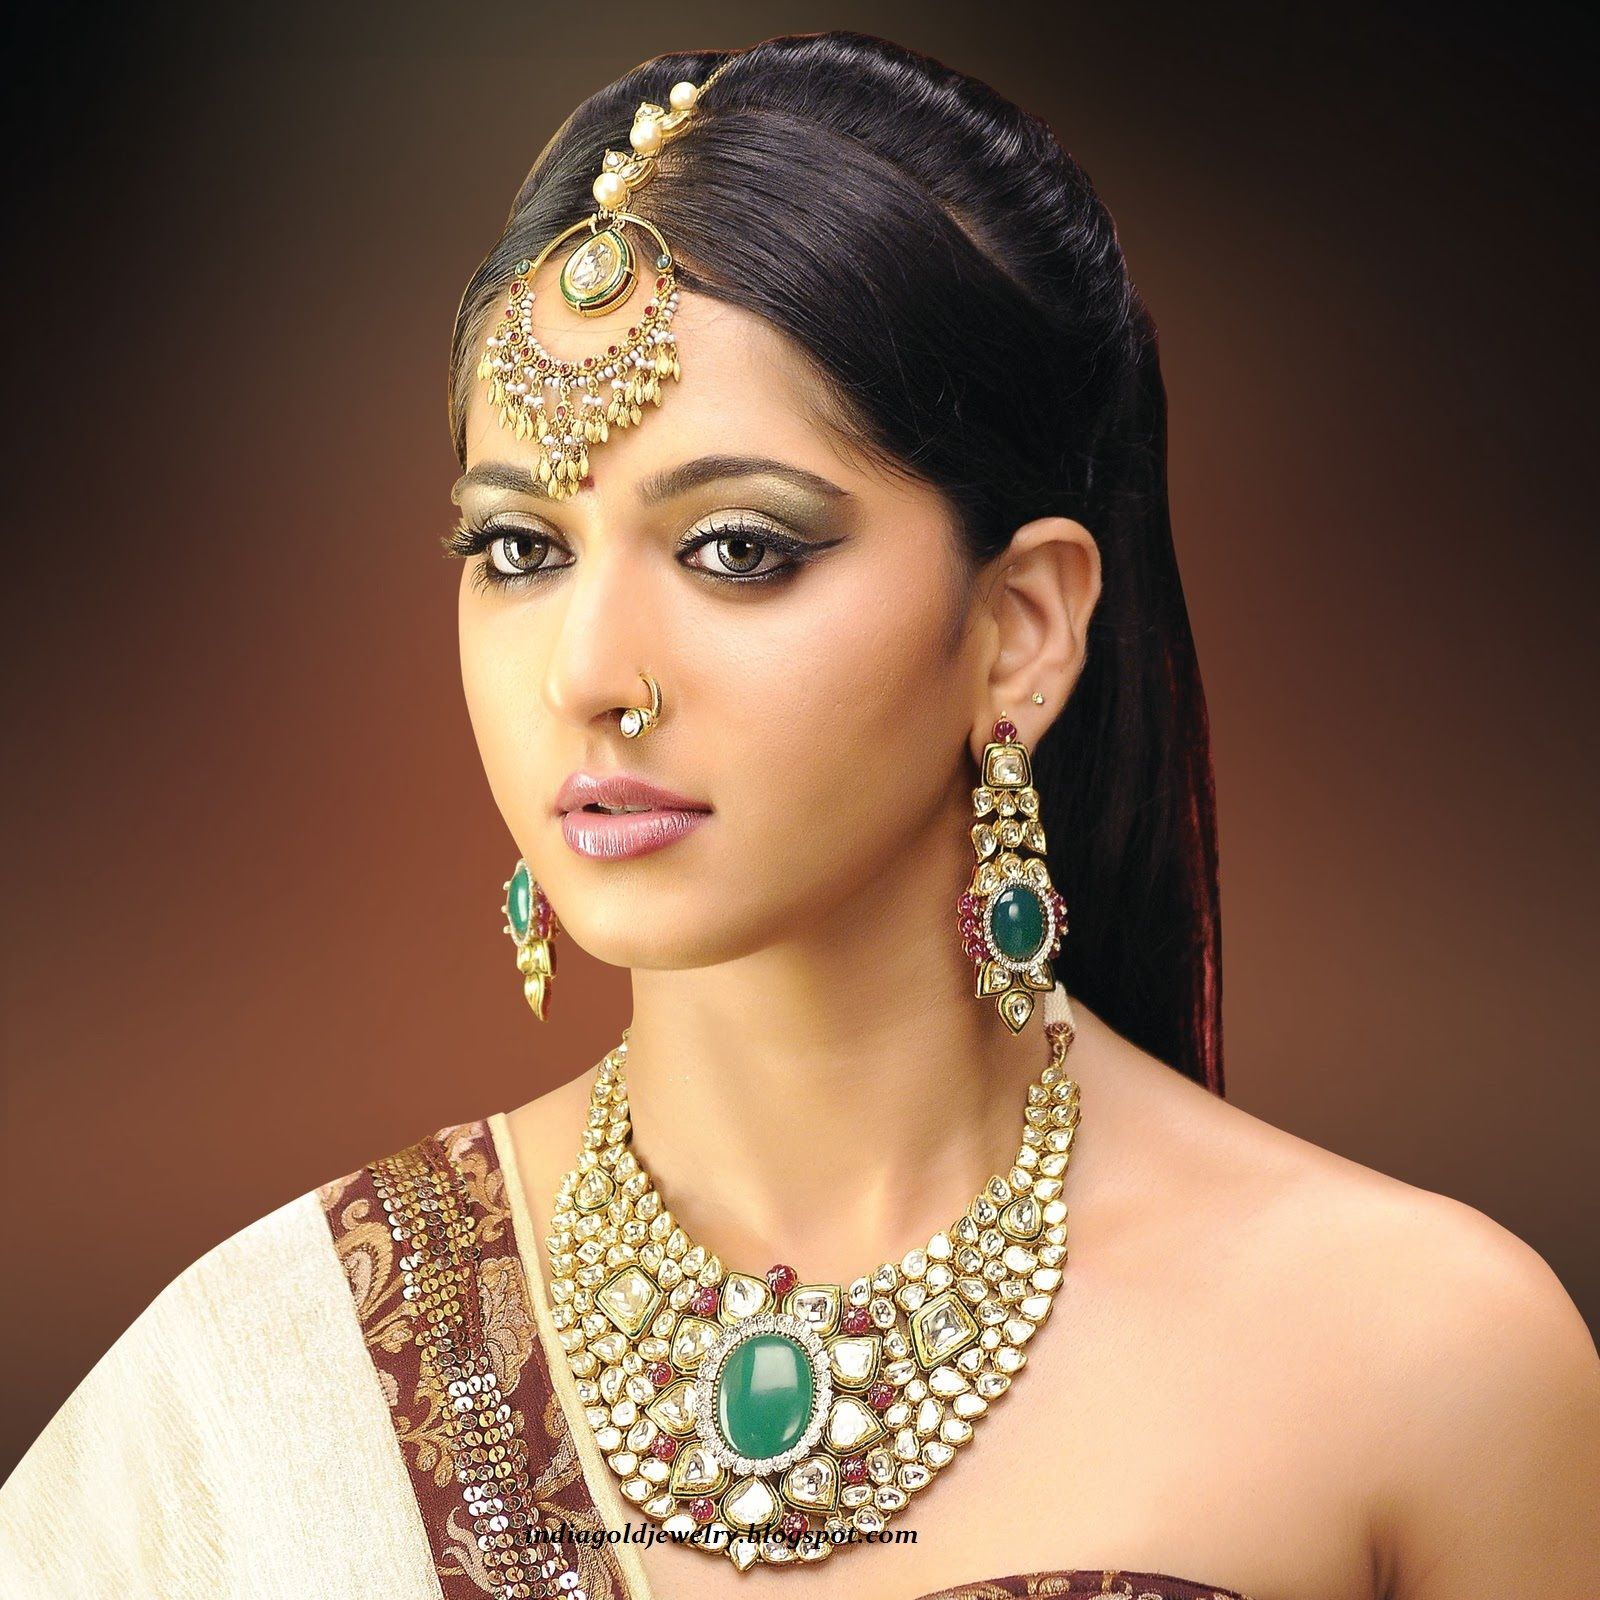 Jewels pinterest beautiful indian wedding jewellery and jewellery - Latest Indian Gold And Diamond Jewellery Designs Anushka In Bridal